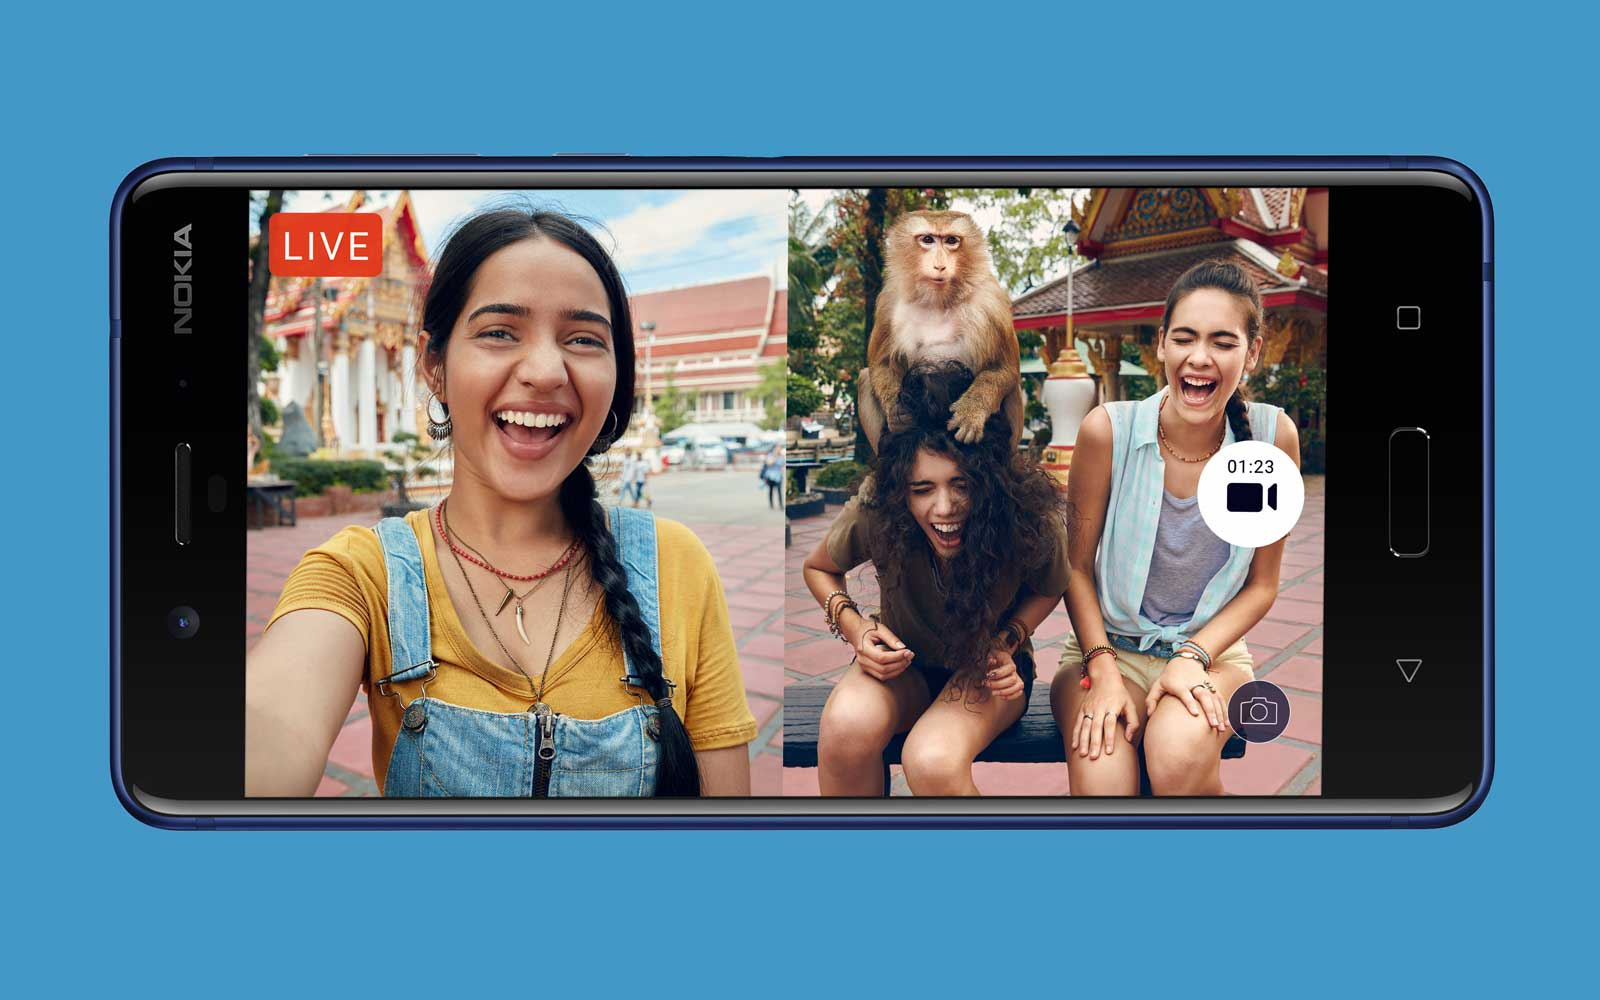 Nokia 8 'Bothie' Camera Lets You Take Selfies and Scenery Shots at the Same Time